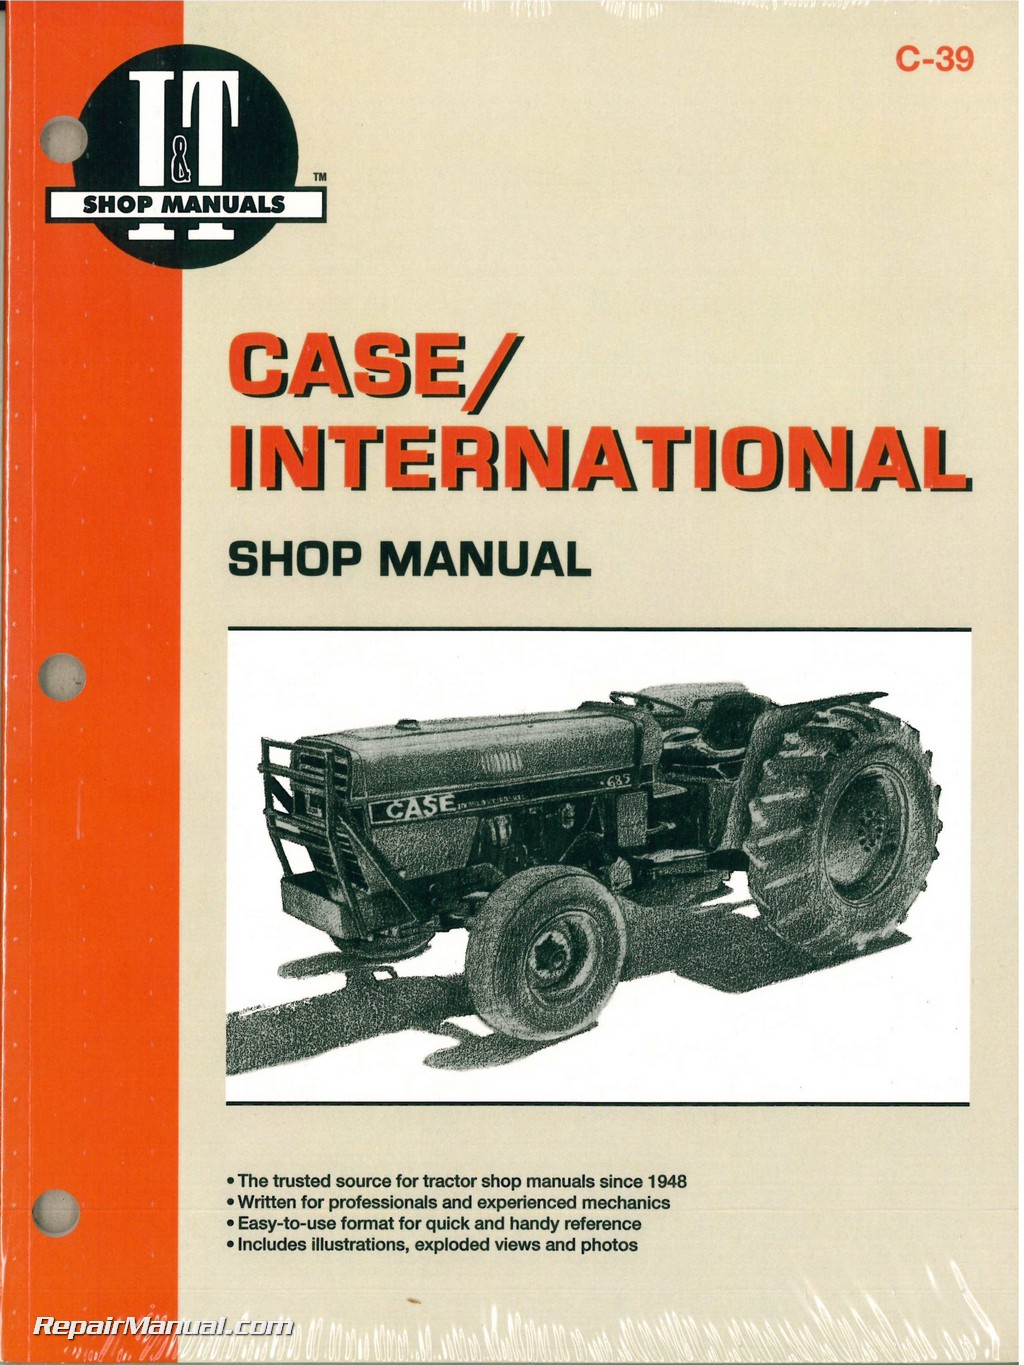 basic engine diagram engine 350 case international 385 485 585 685 885 tractor workshop manual trimmer engine diagram #15